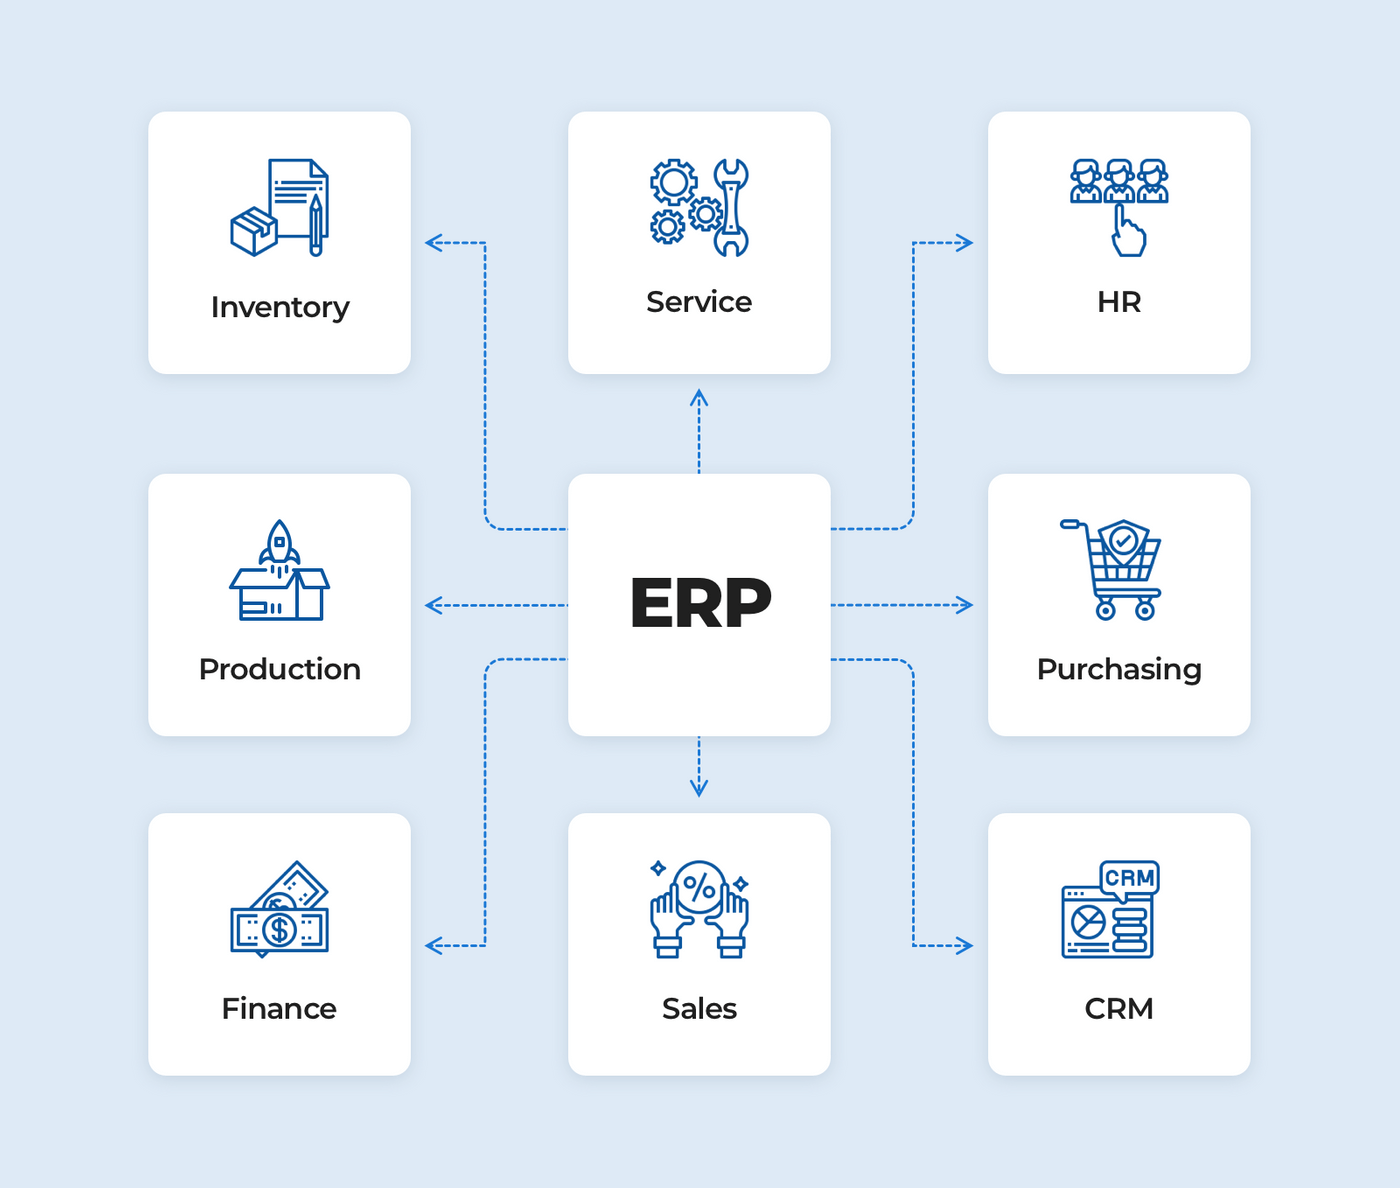 How to build ERP system